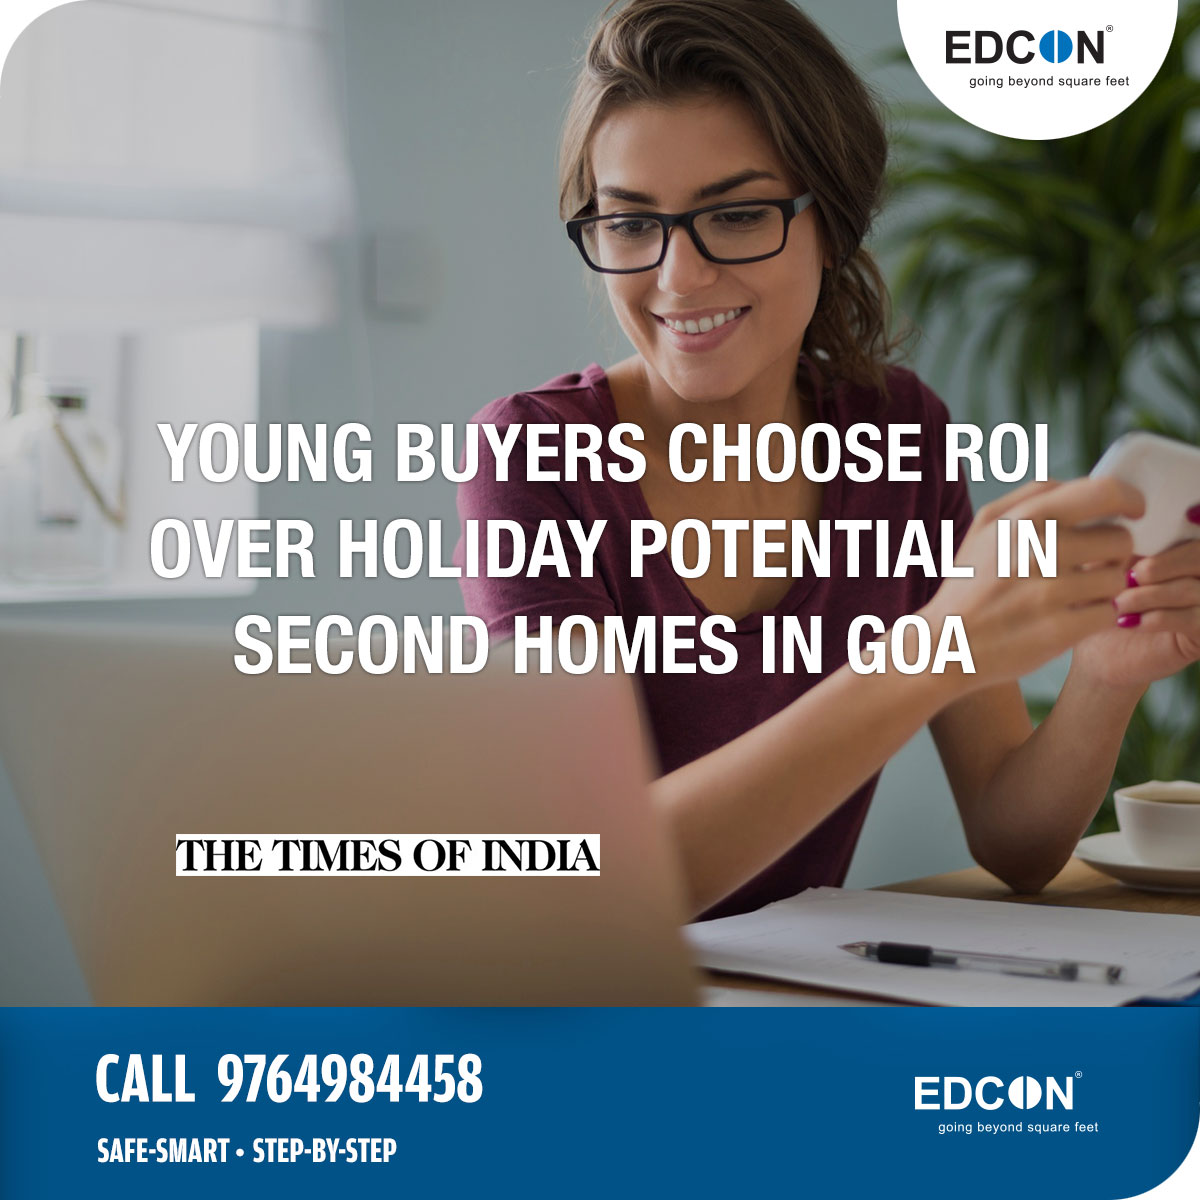 Young buyers choose ROI over holiday potential in second homes